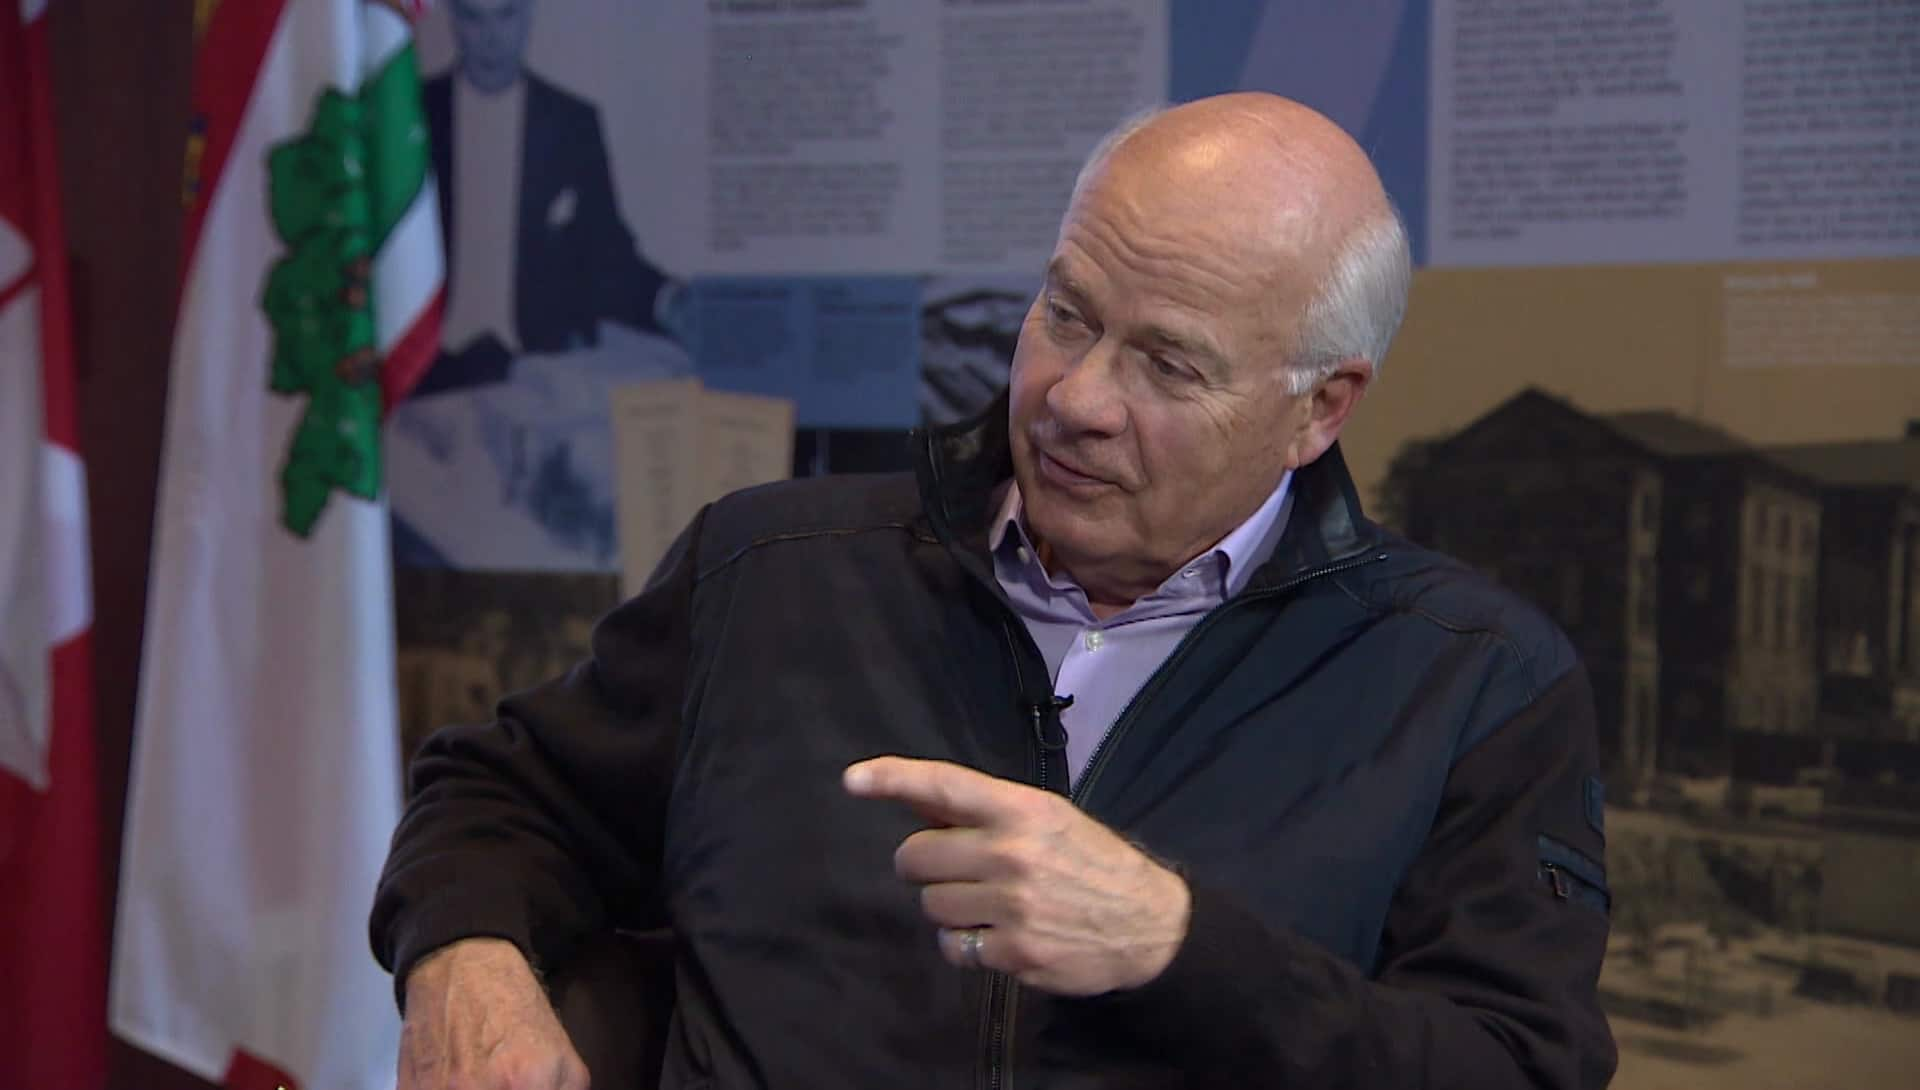 Exclusive interview: Mansbridge on Mansbridge